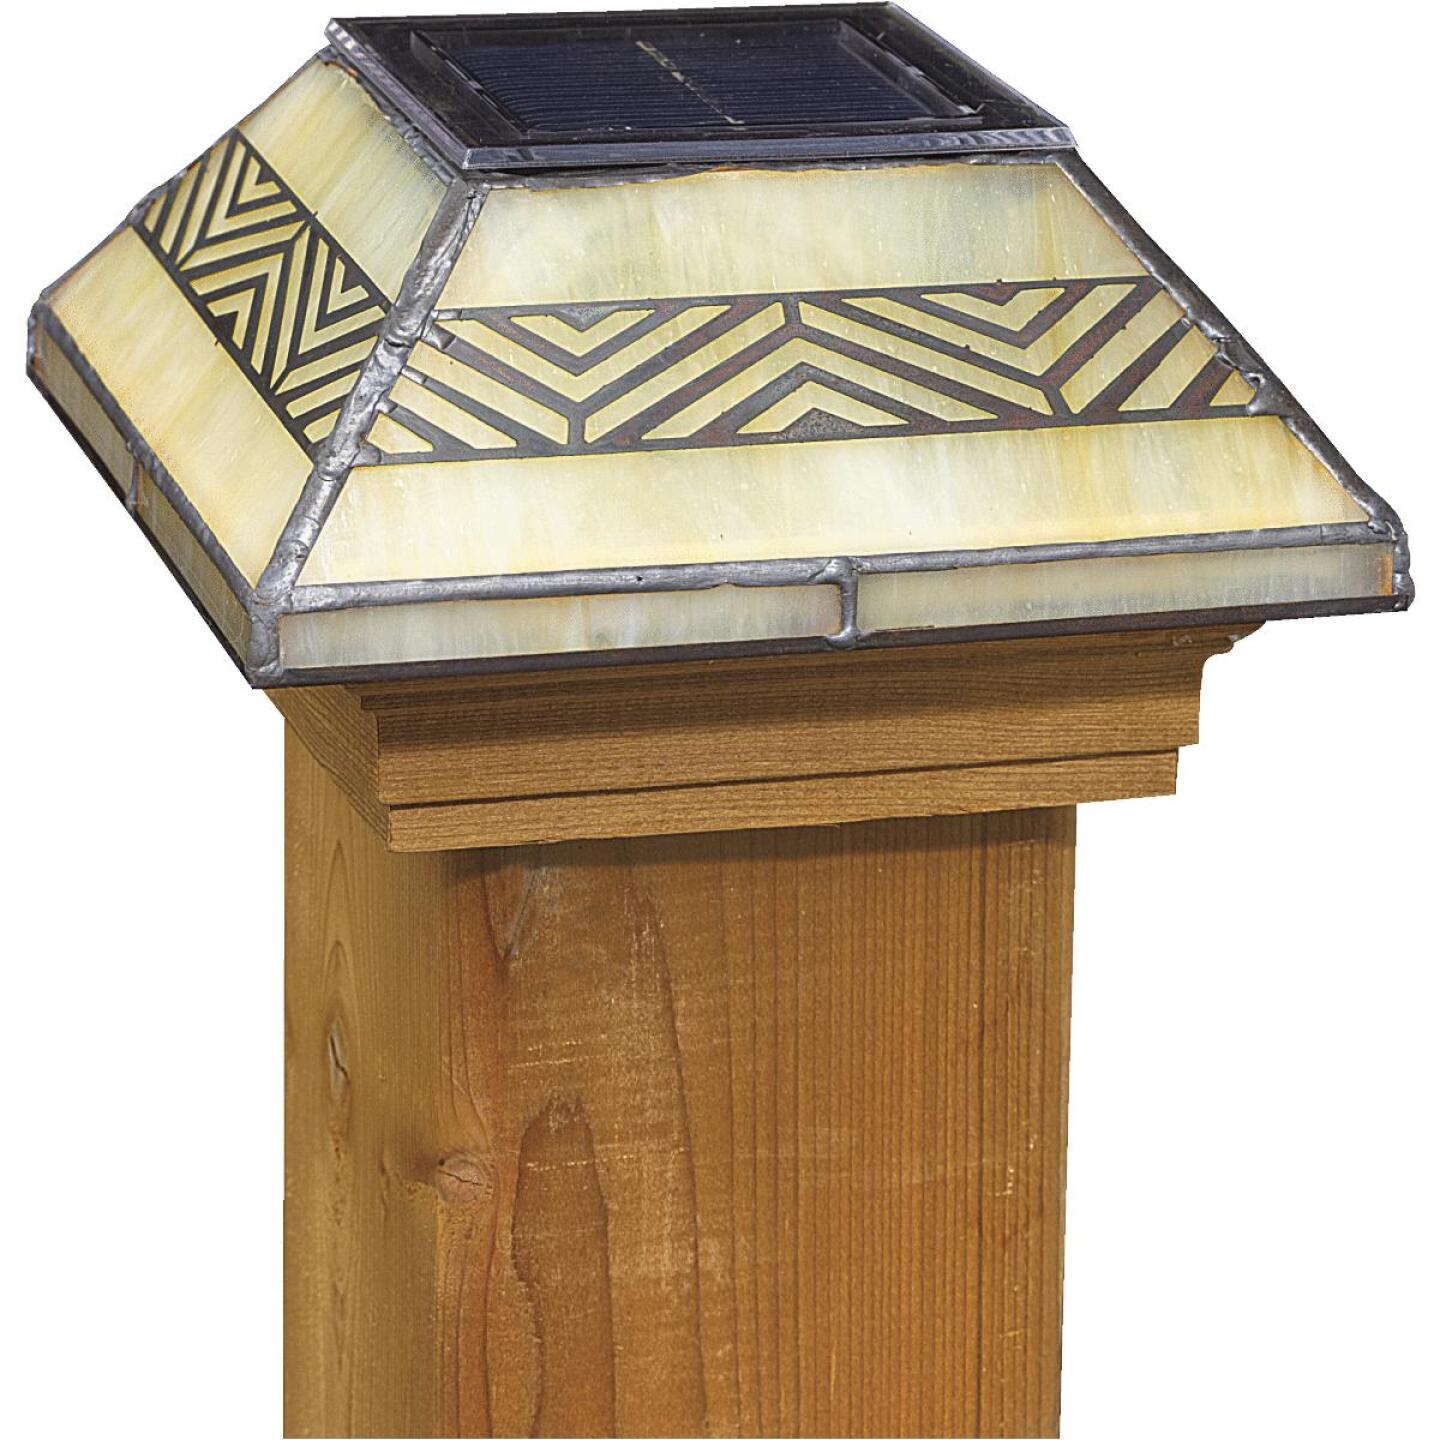 Deckorators 4 In. x 4 In. Frosted Glass Filigreed Solar Post Cap Image 1